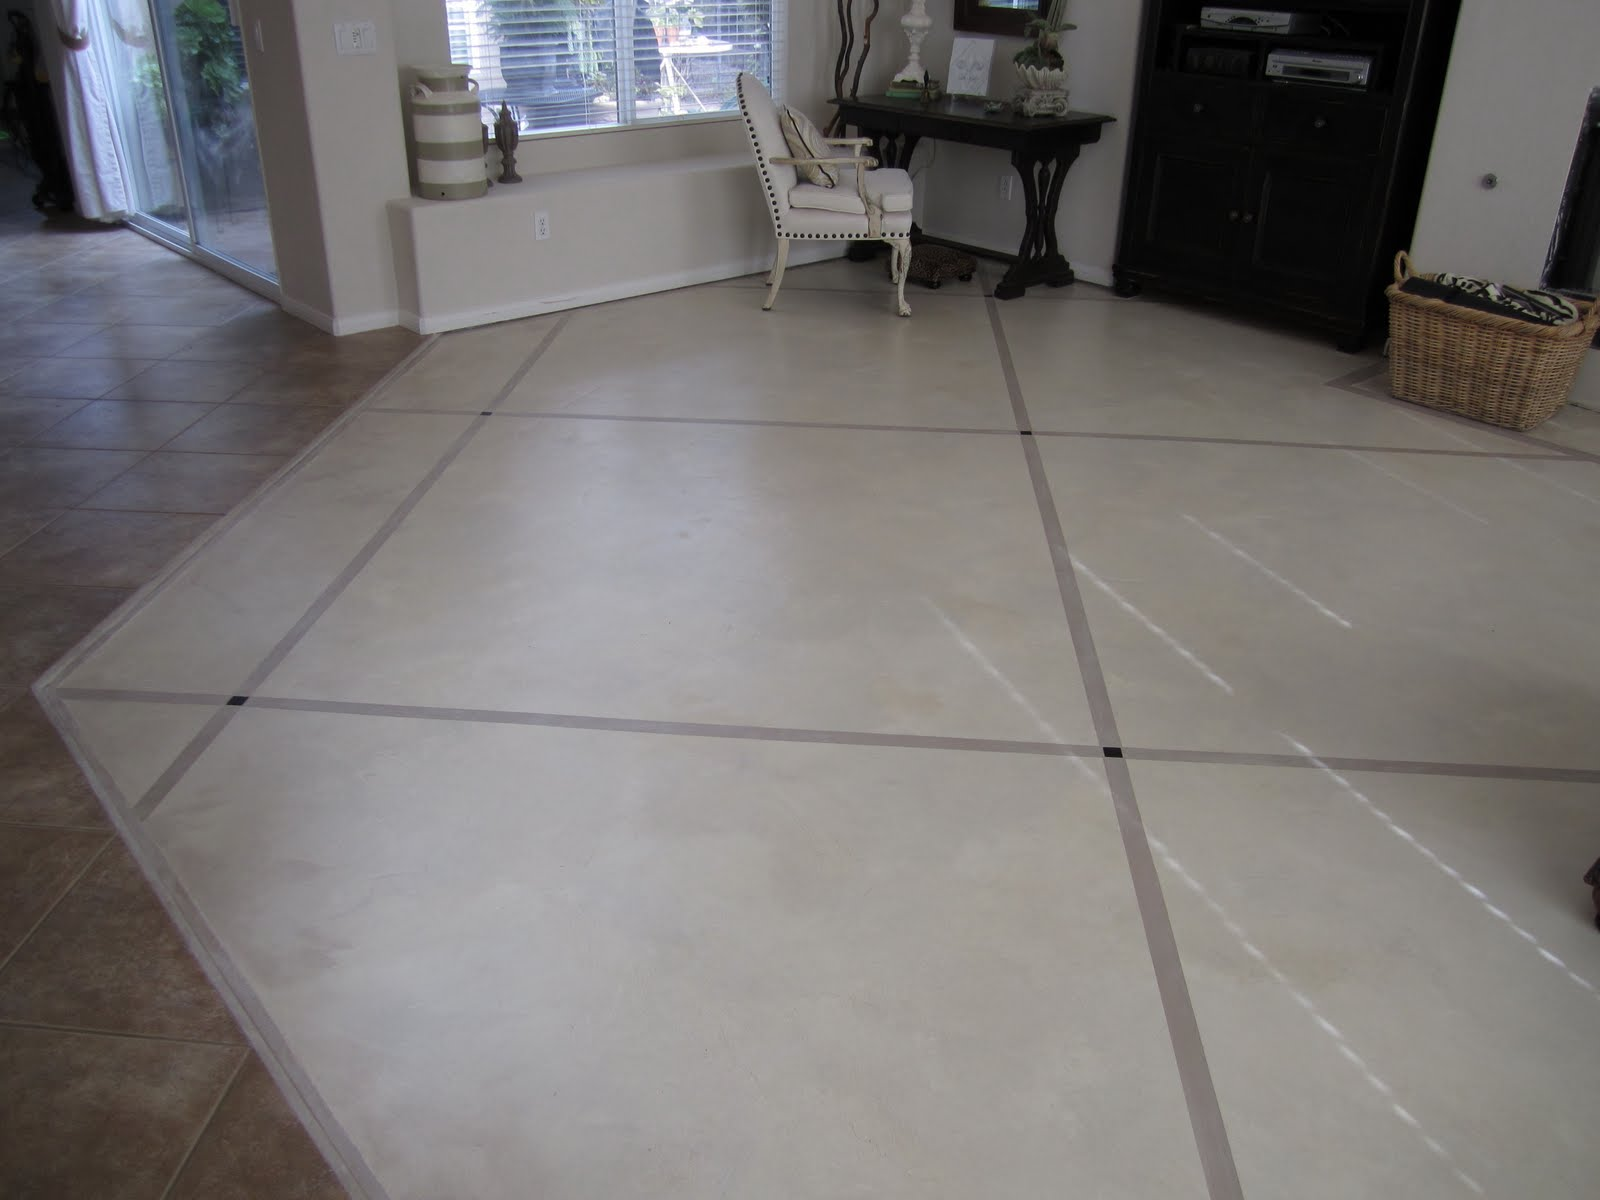 Awesome Step By Step Instructions On How To Prep. And Paint Concrete Floors